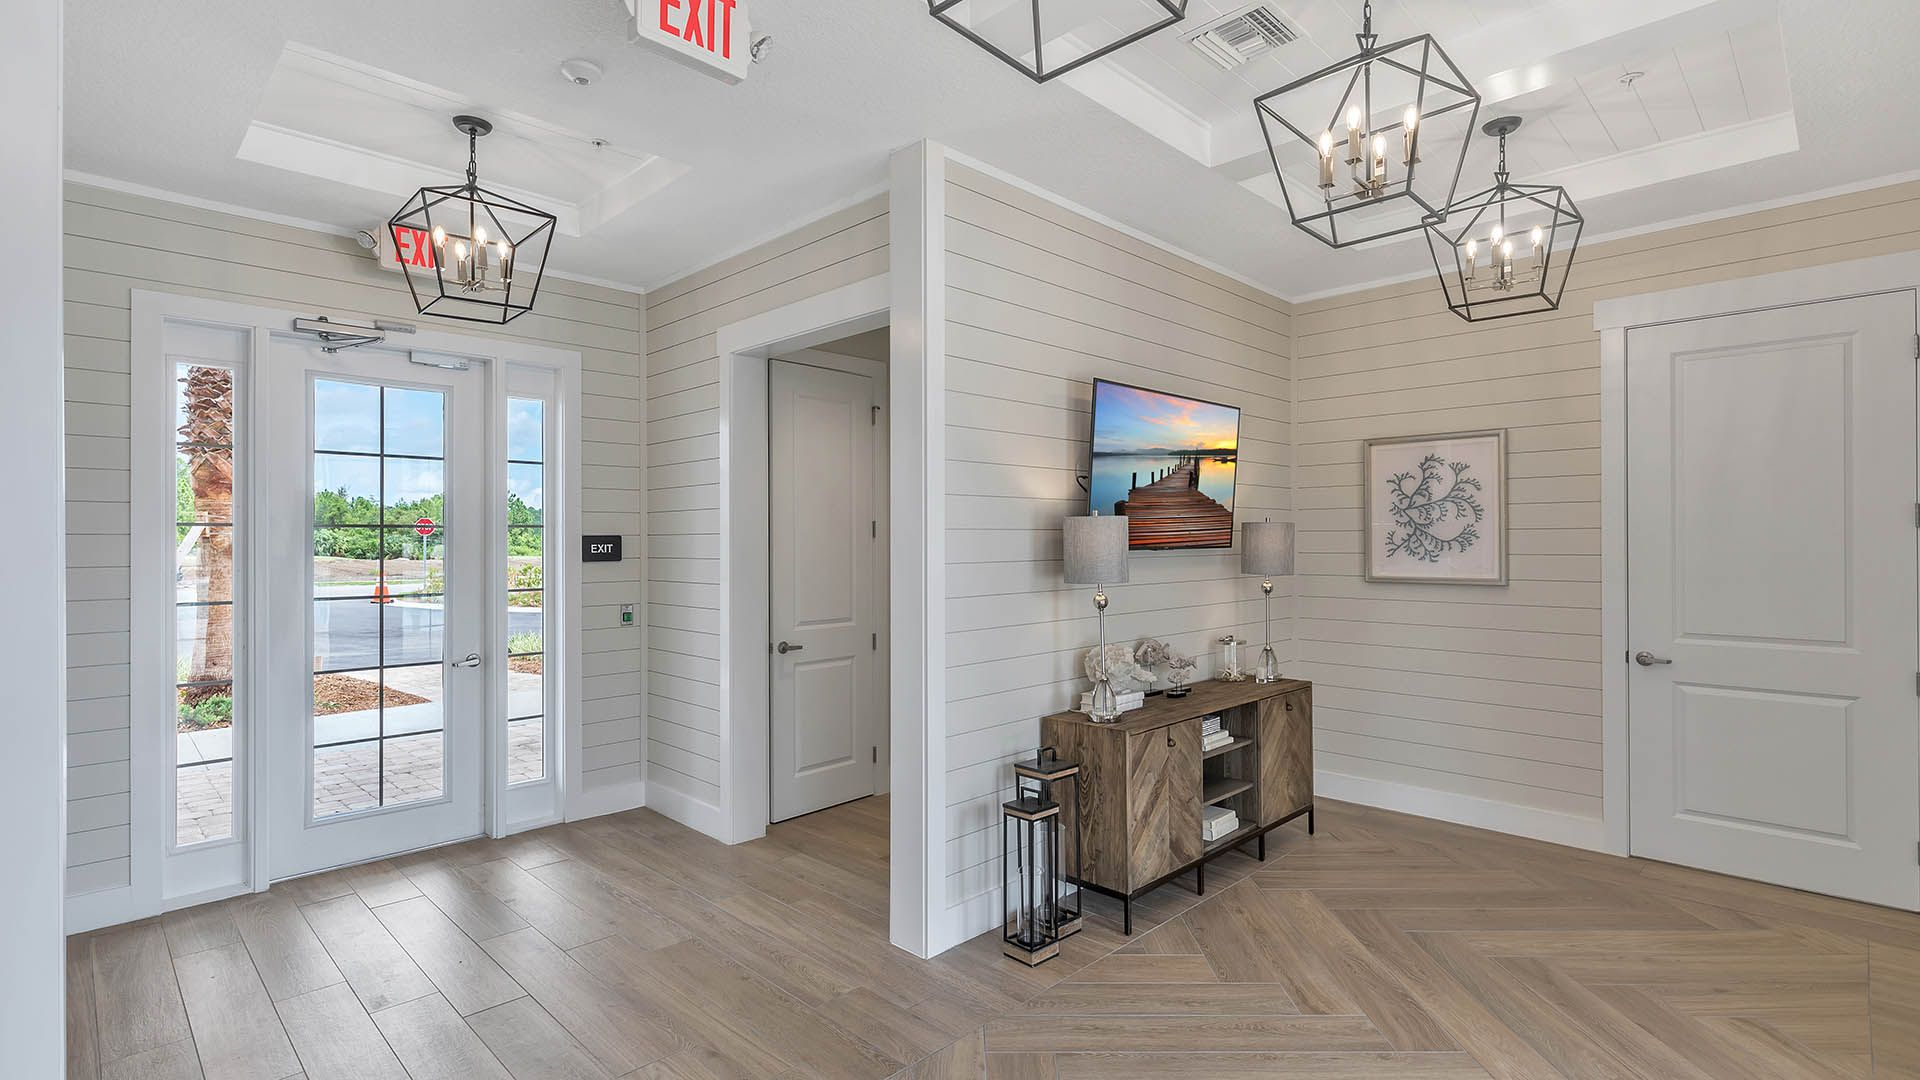 Living Area featured in the ADELE By D.R. Horton in Daytona Beach, FL